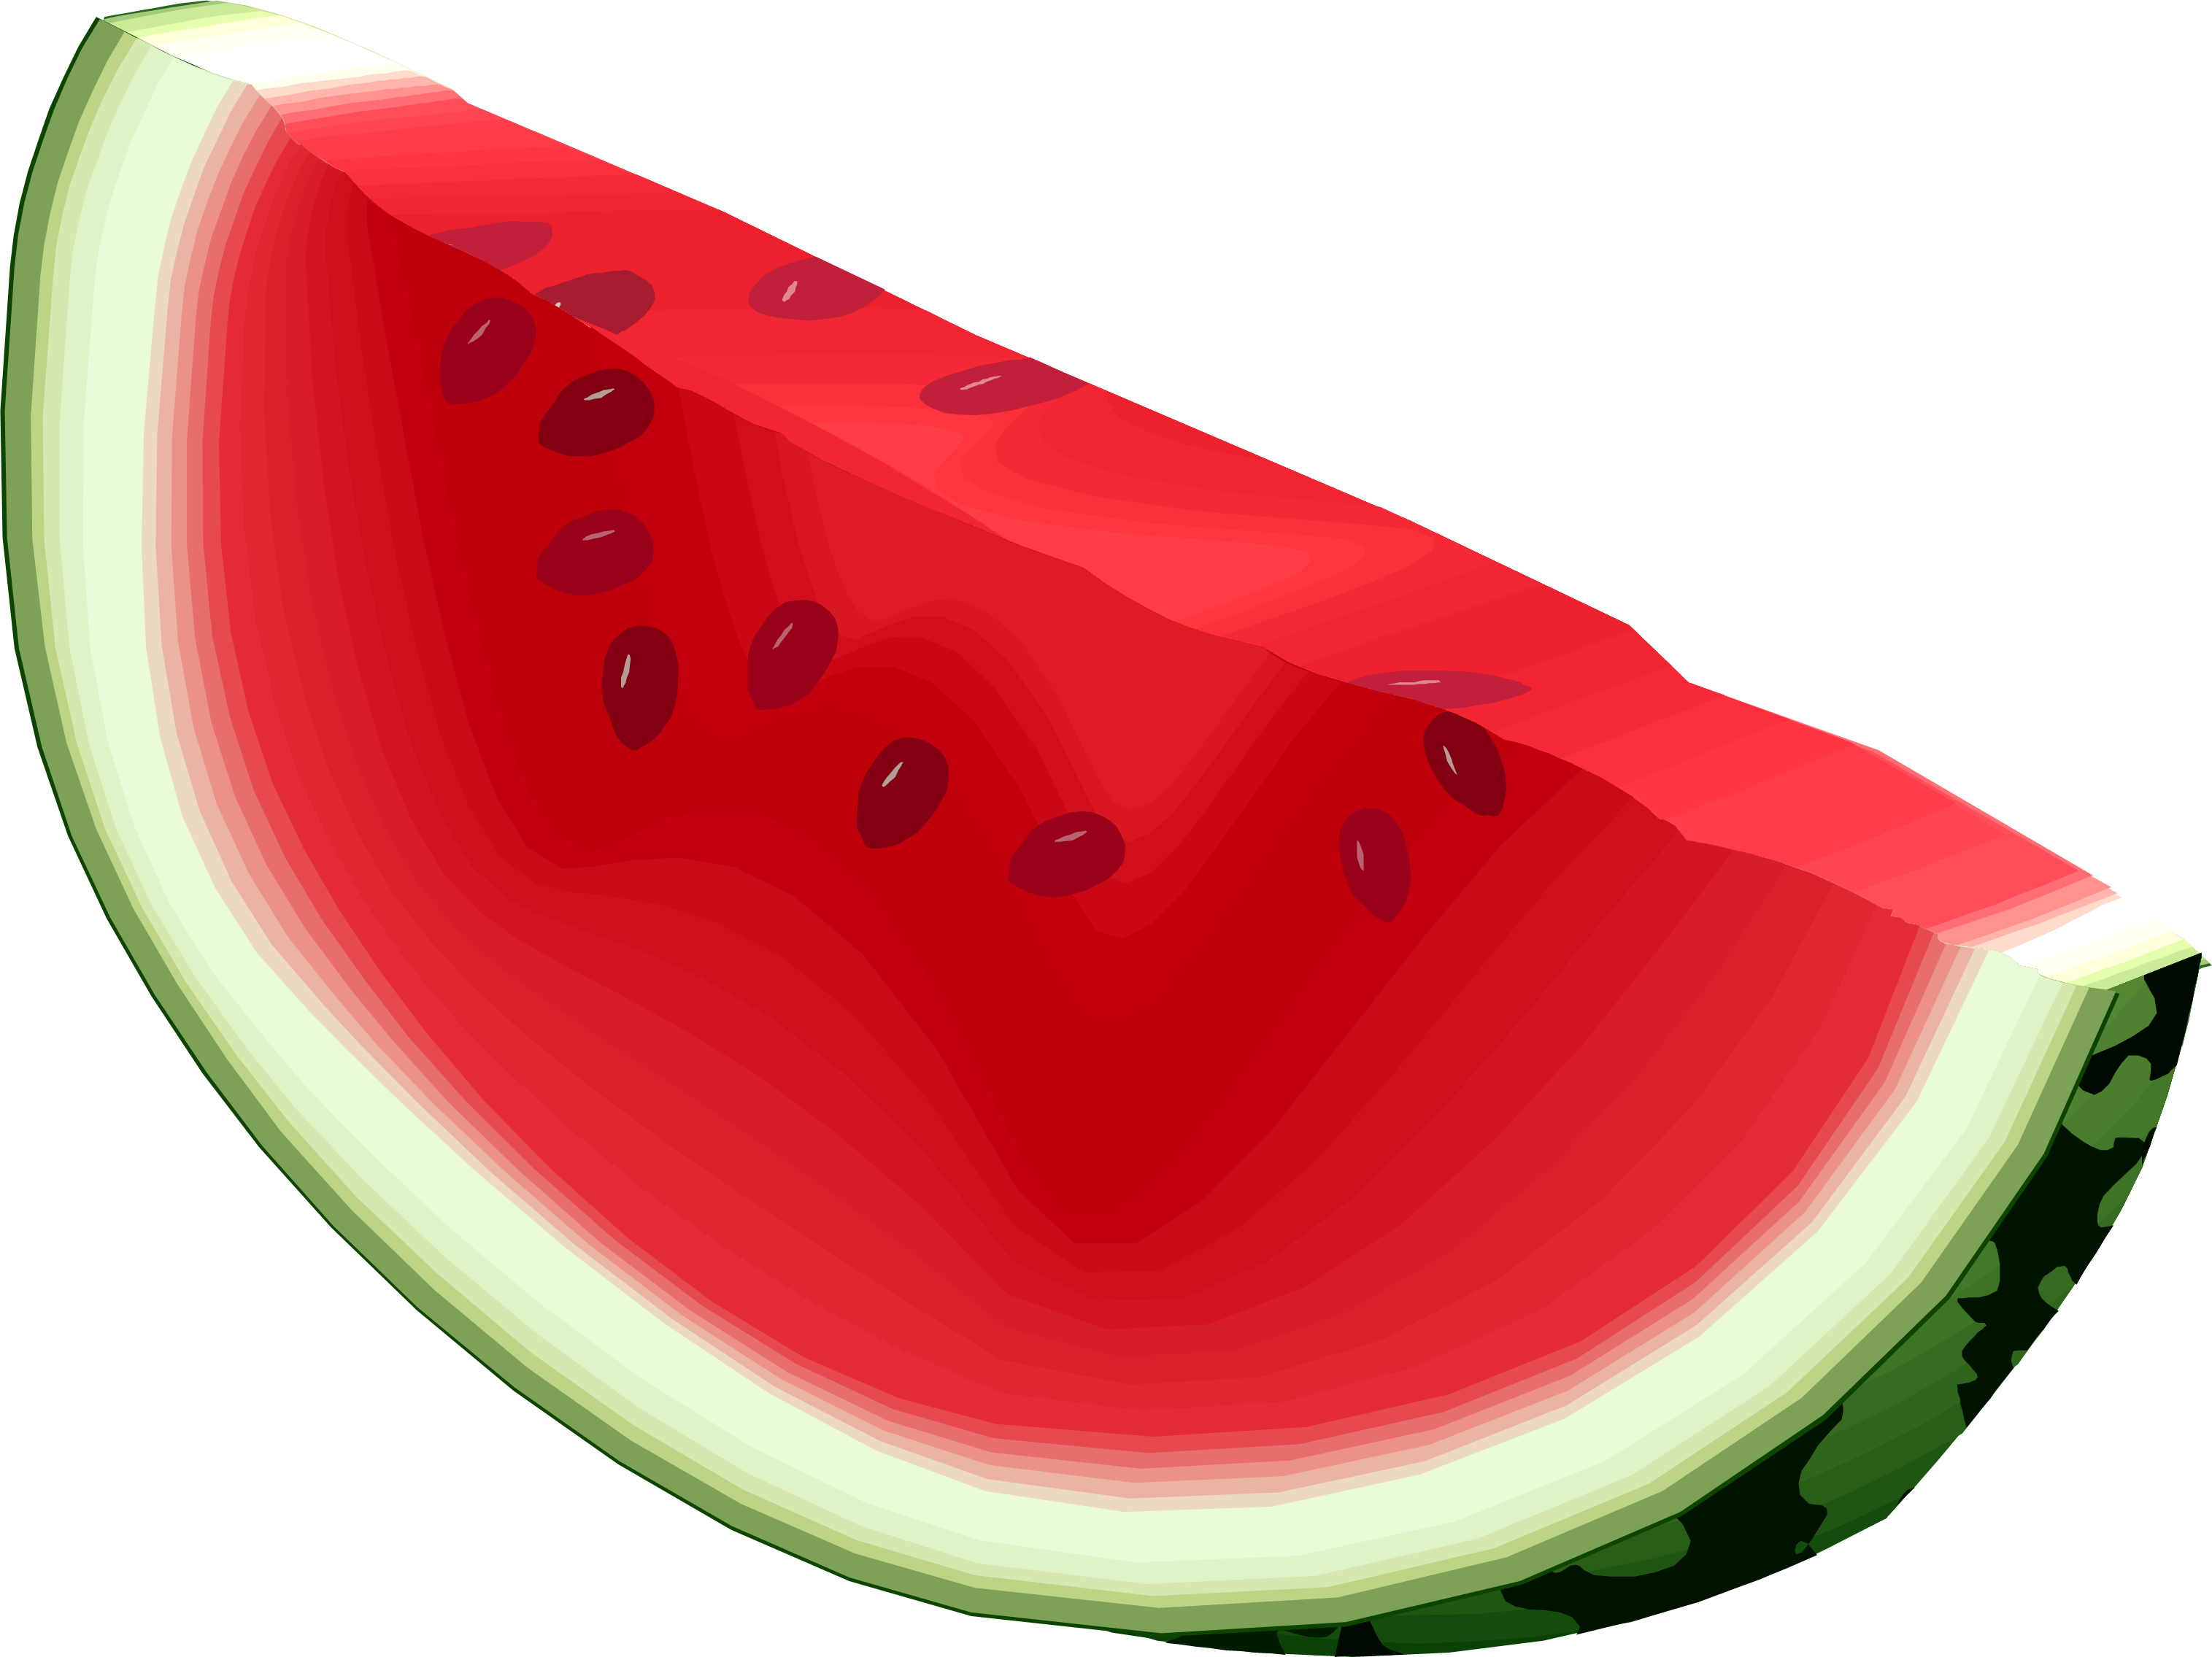 3031x2271 Backgrounds for watermelon slice clip art no background –